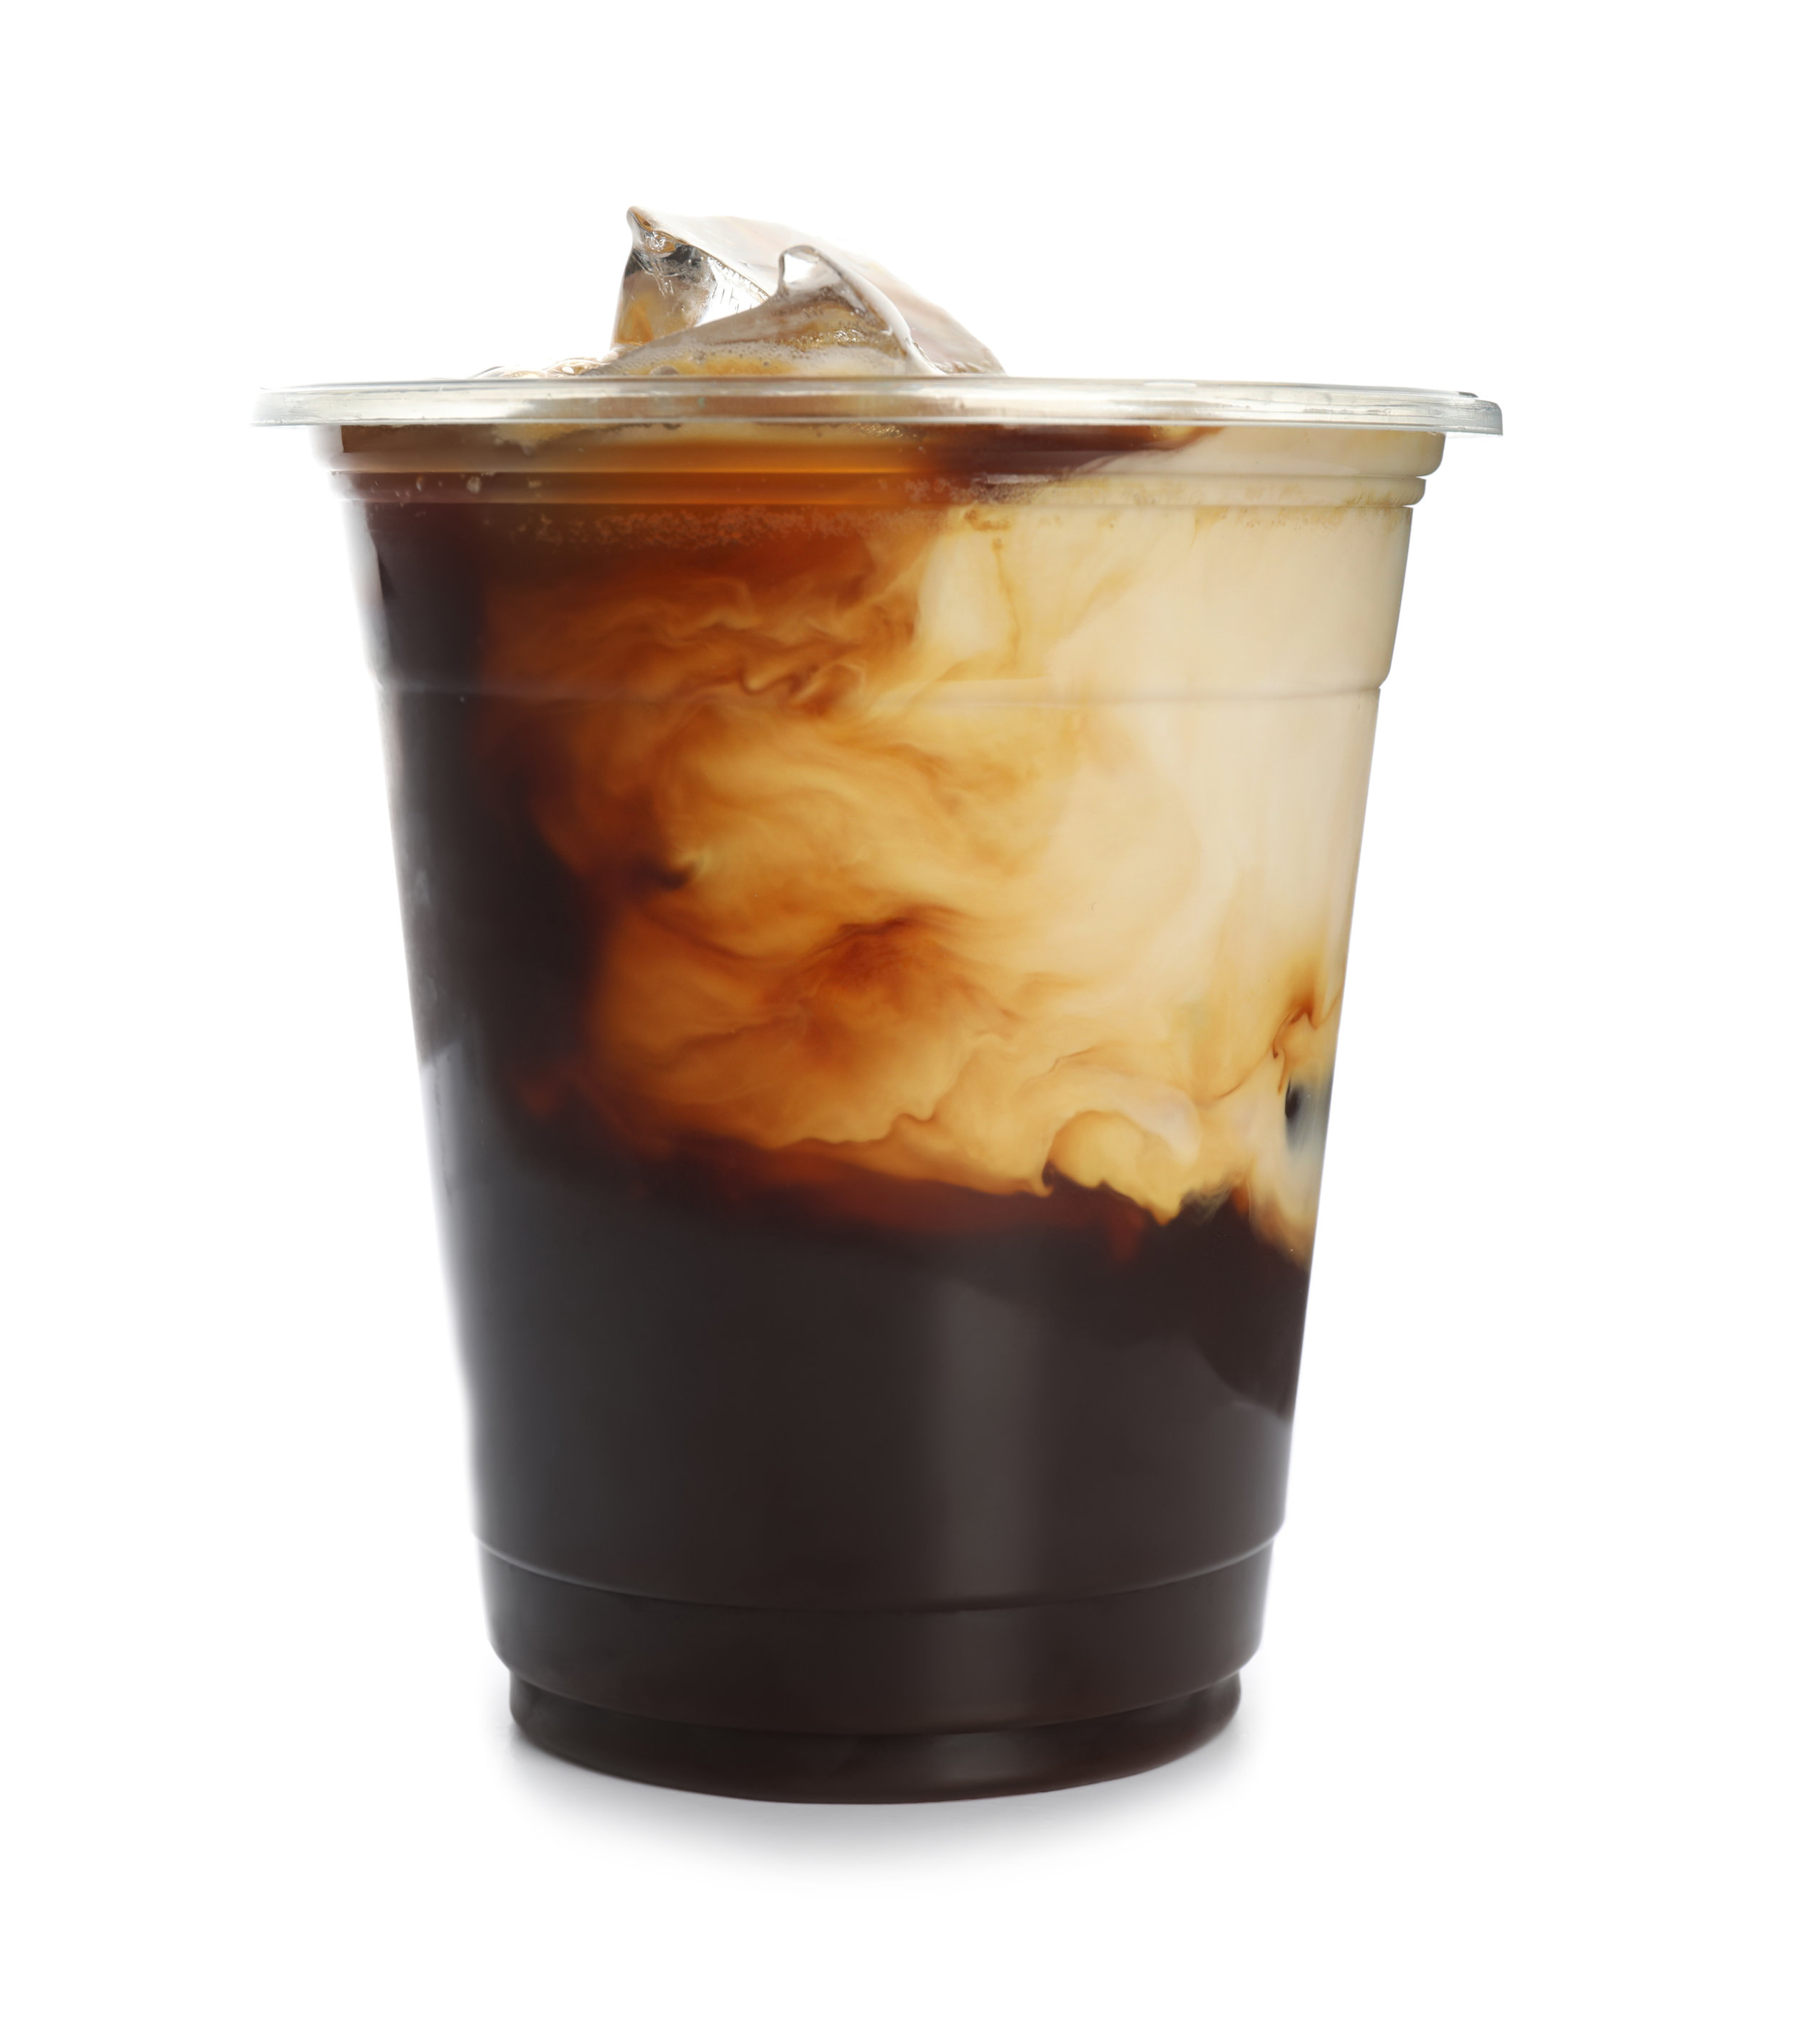 Cold Brew 101 - It's not your father's coffee…